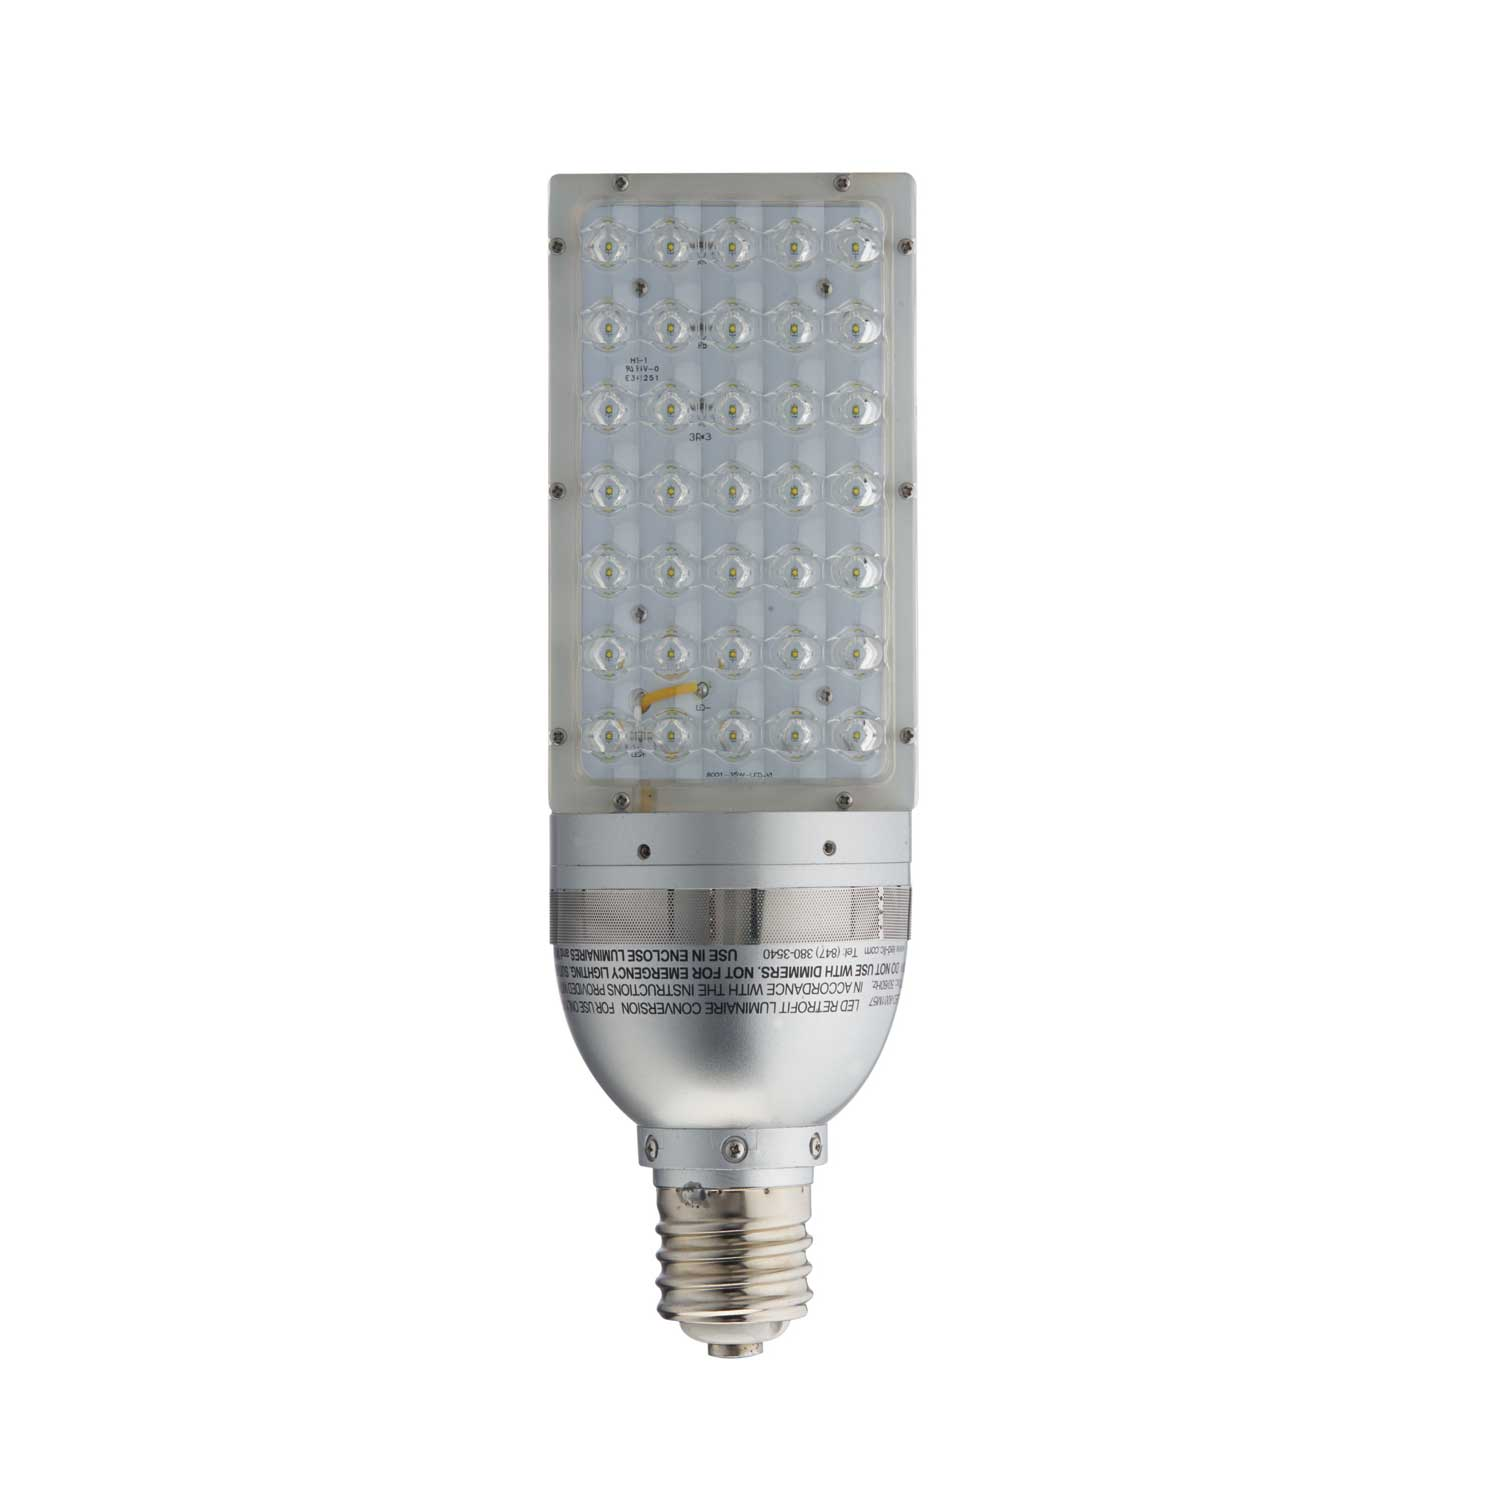 Light Efficient Design Led-8001M57 Bulb 35W Pole Top/Wall Pack Great Brands Outlet